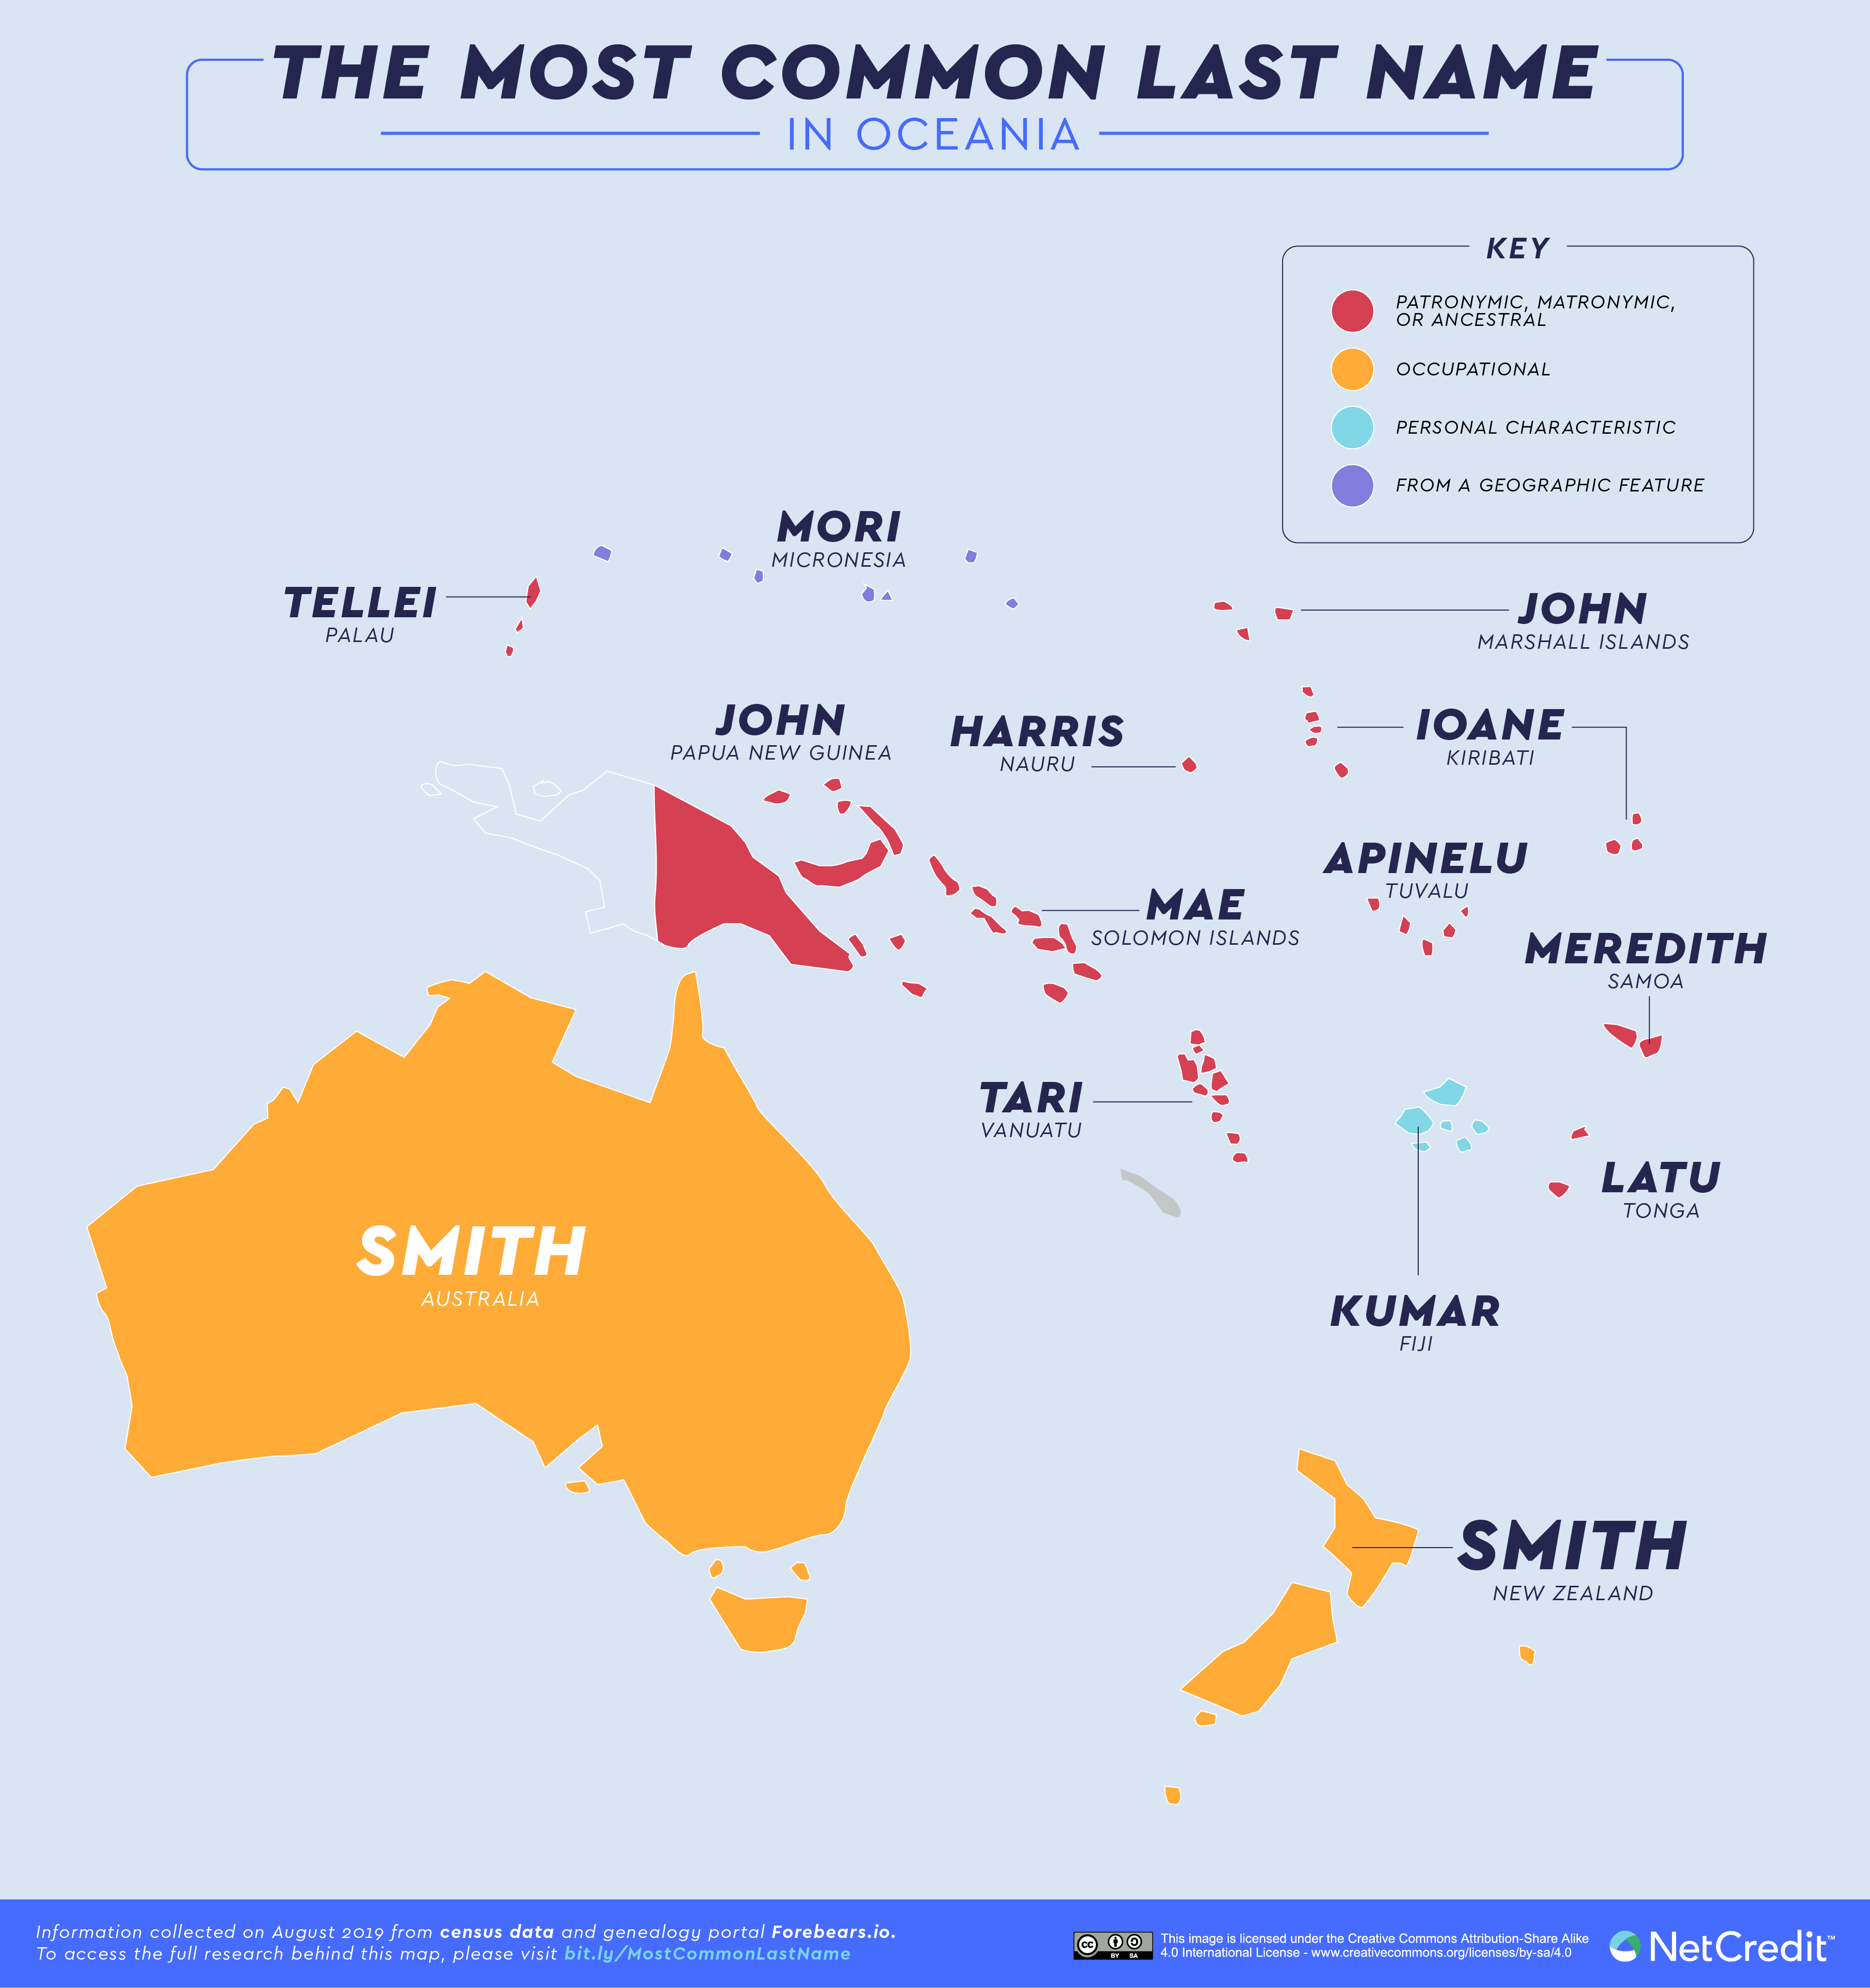 The Most Common Last Names in Oceania